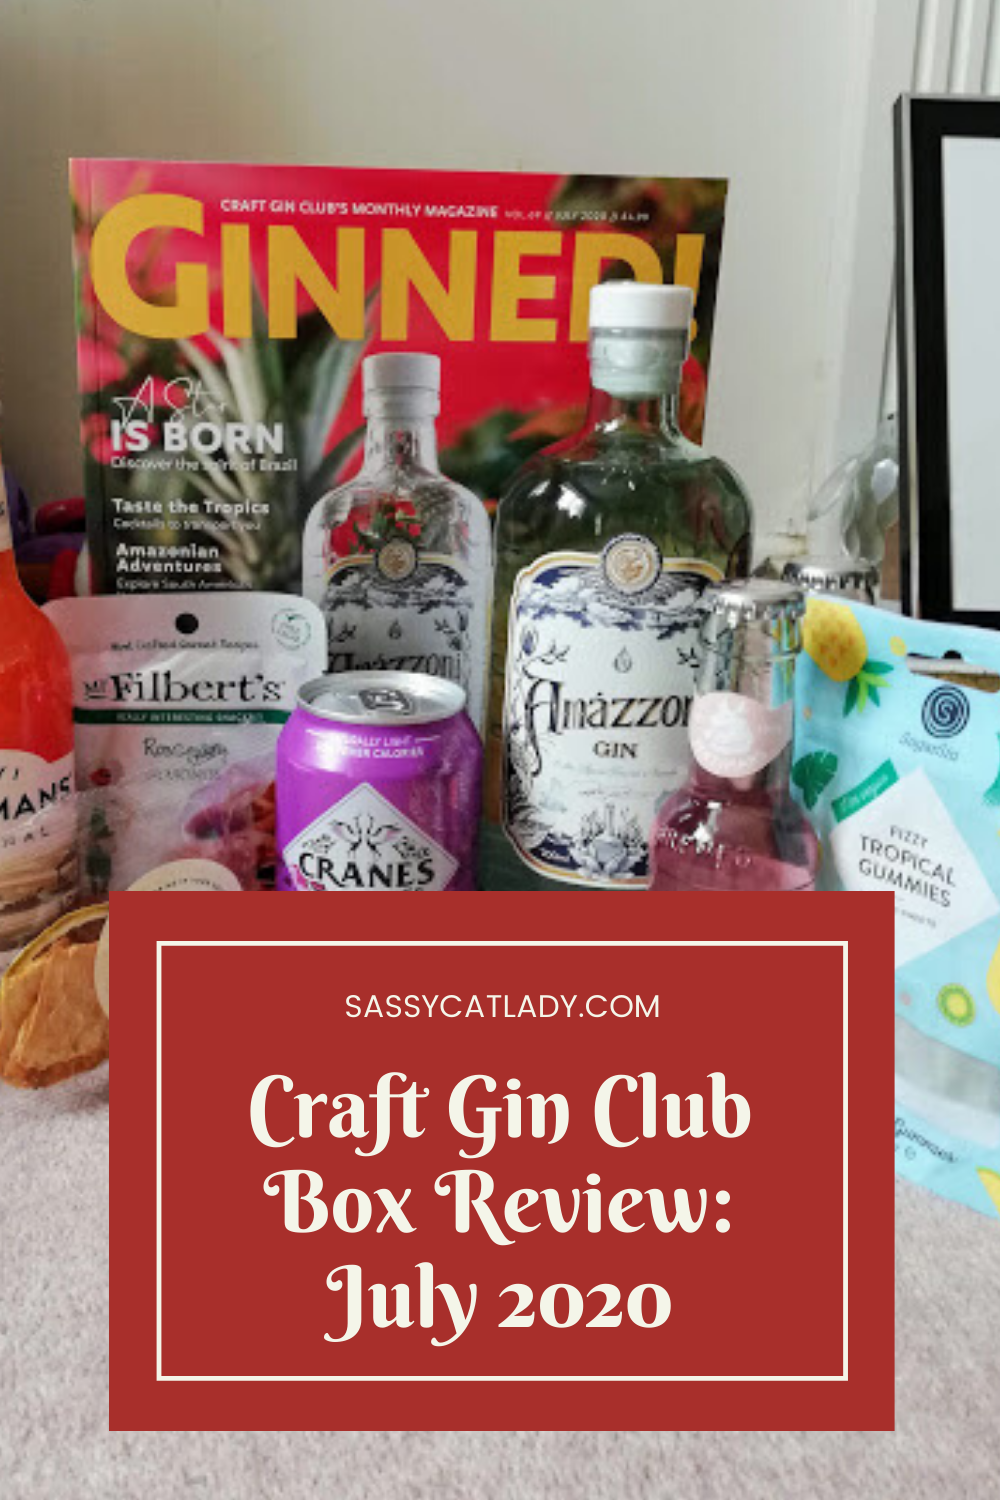 Craft Gin Club Review - July 2020